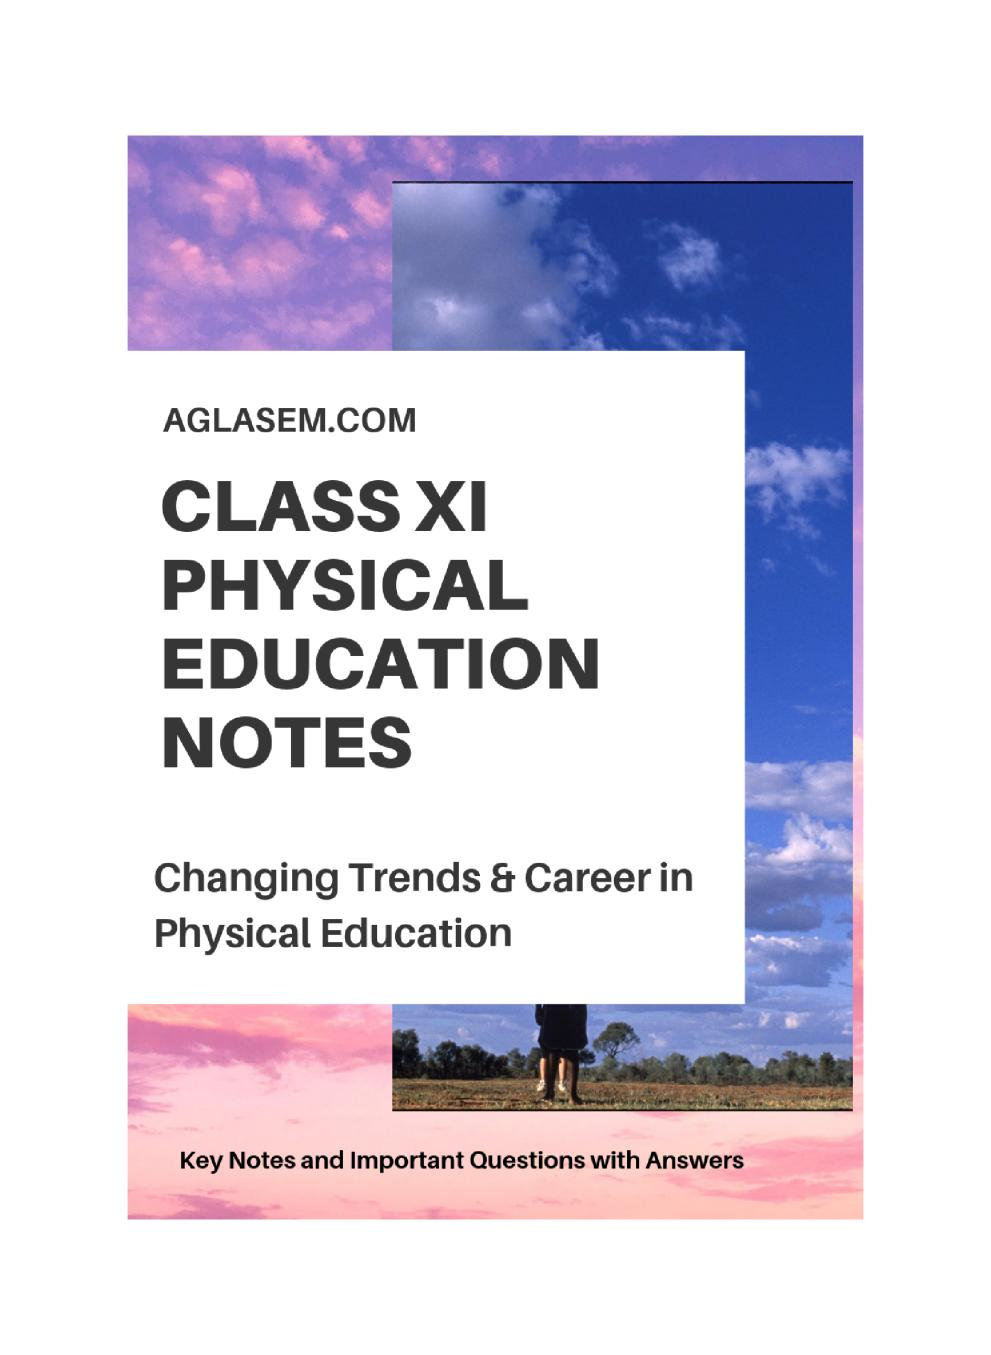 Class 11 Physical Education Notes For Changing Trends Career in Physical Education